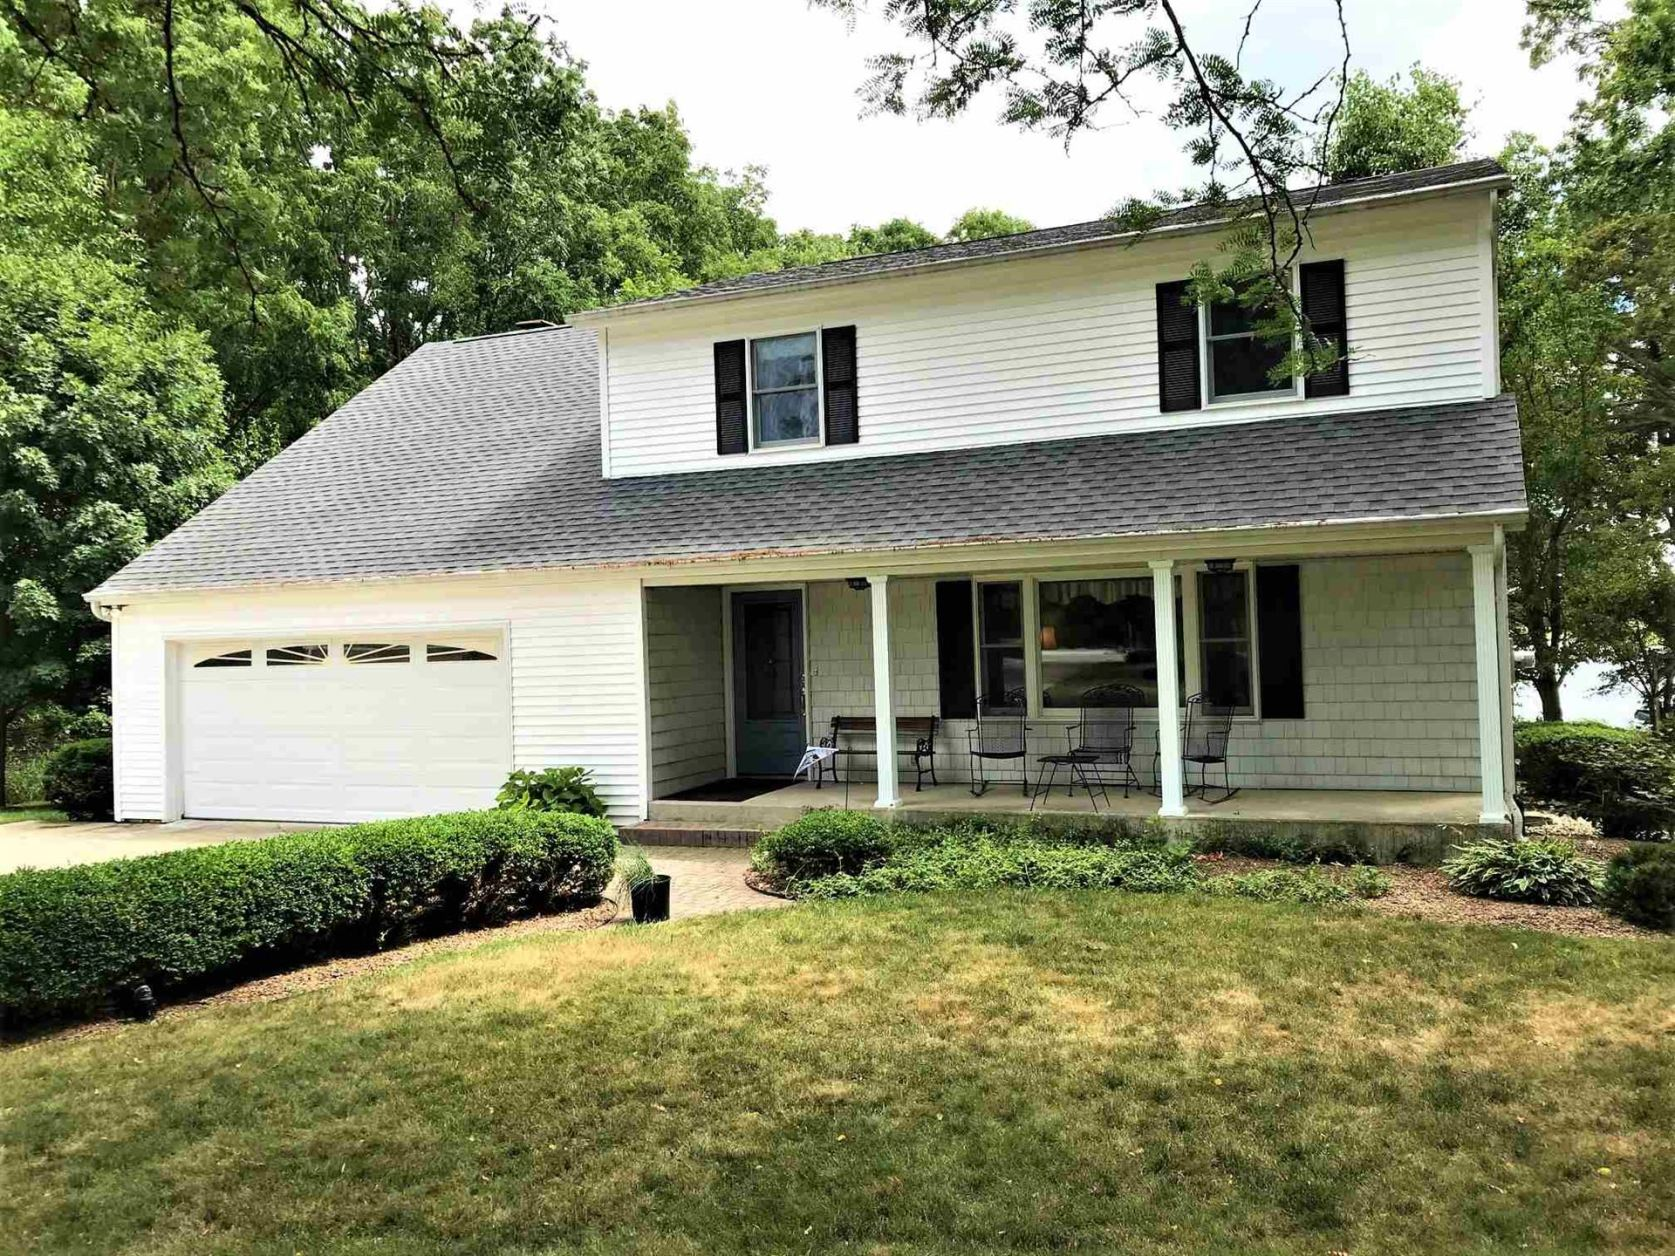 Photo of 3012 Country Club Dr S, Rochester, IN 46975 (MLS # 202026858)